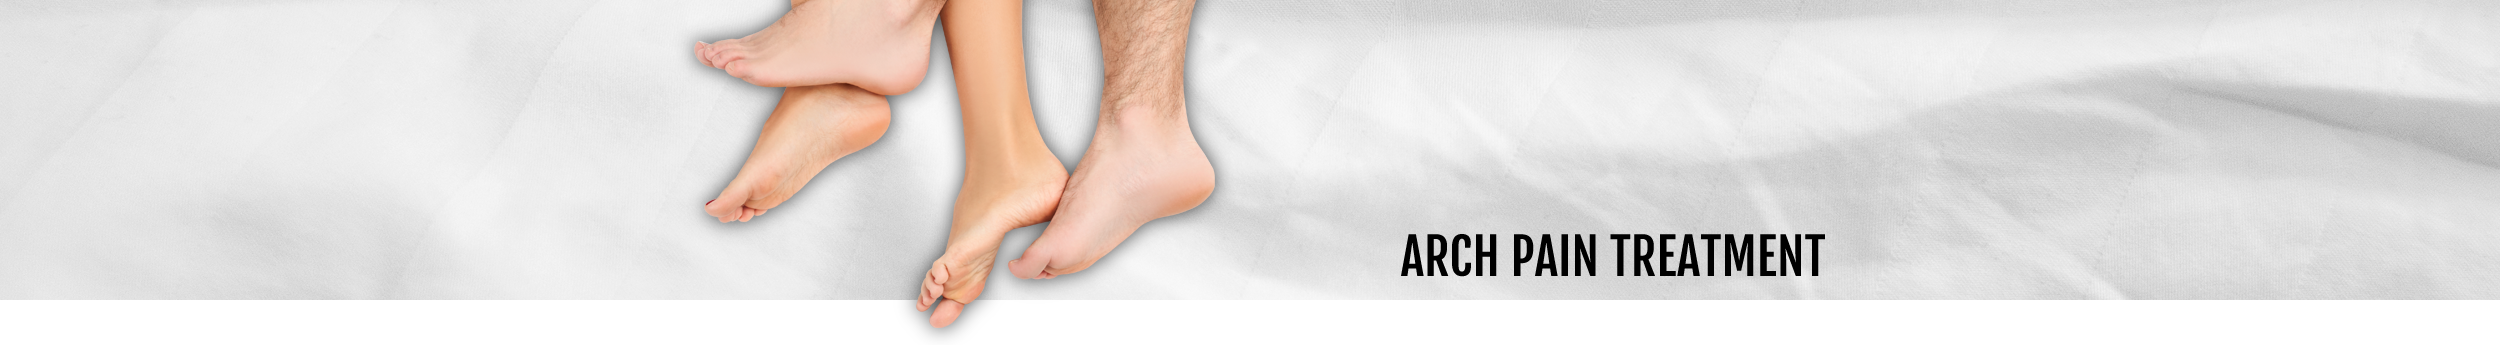 Arch pain treatment header for the Walk IN Foot Clinic in central London